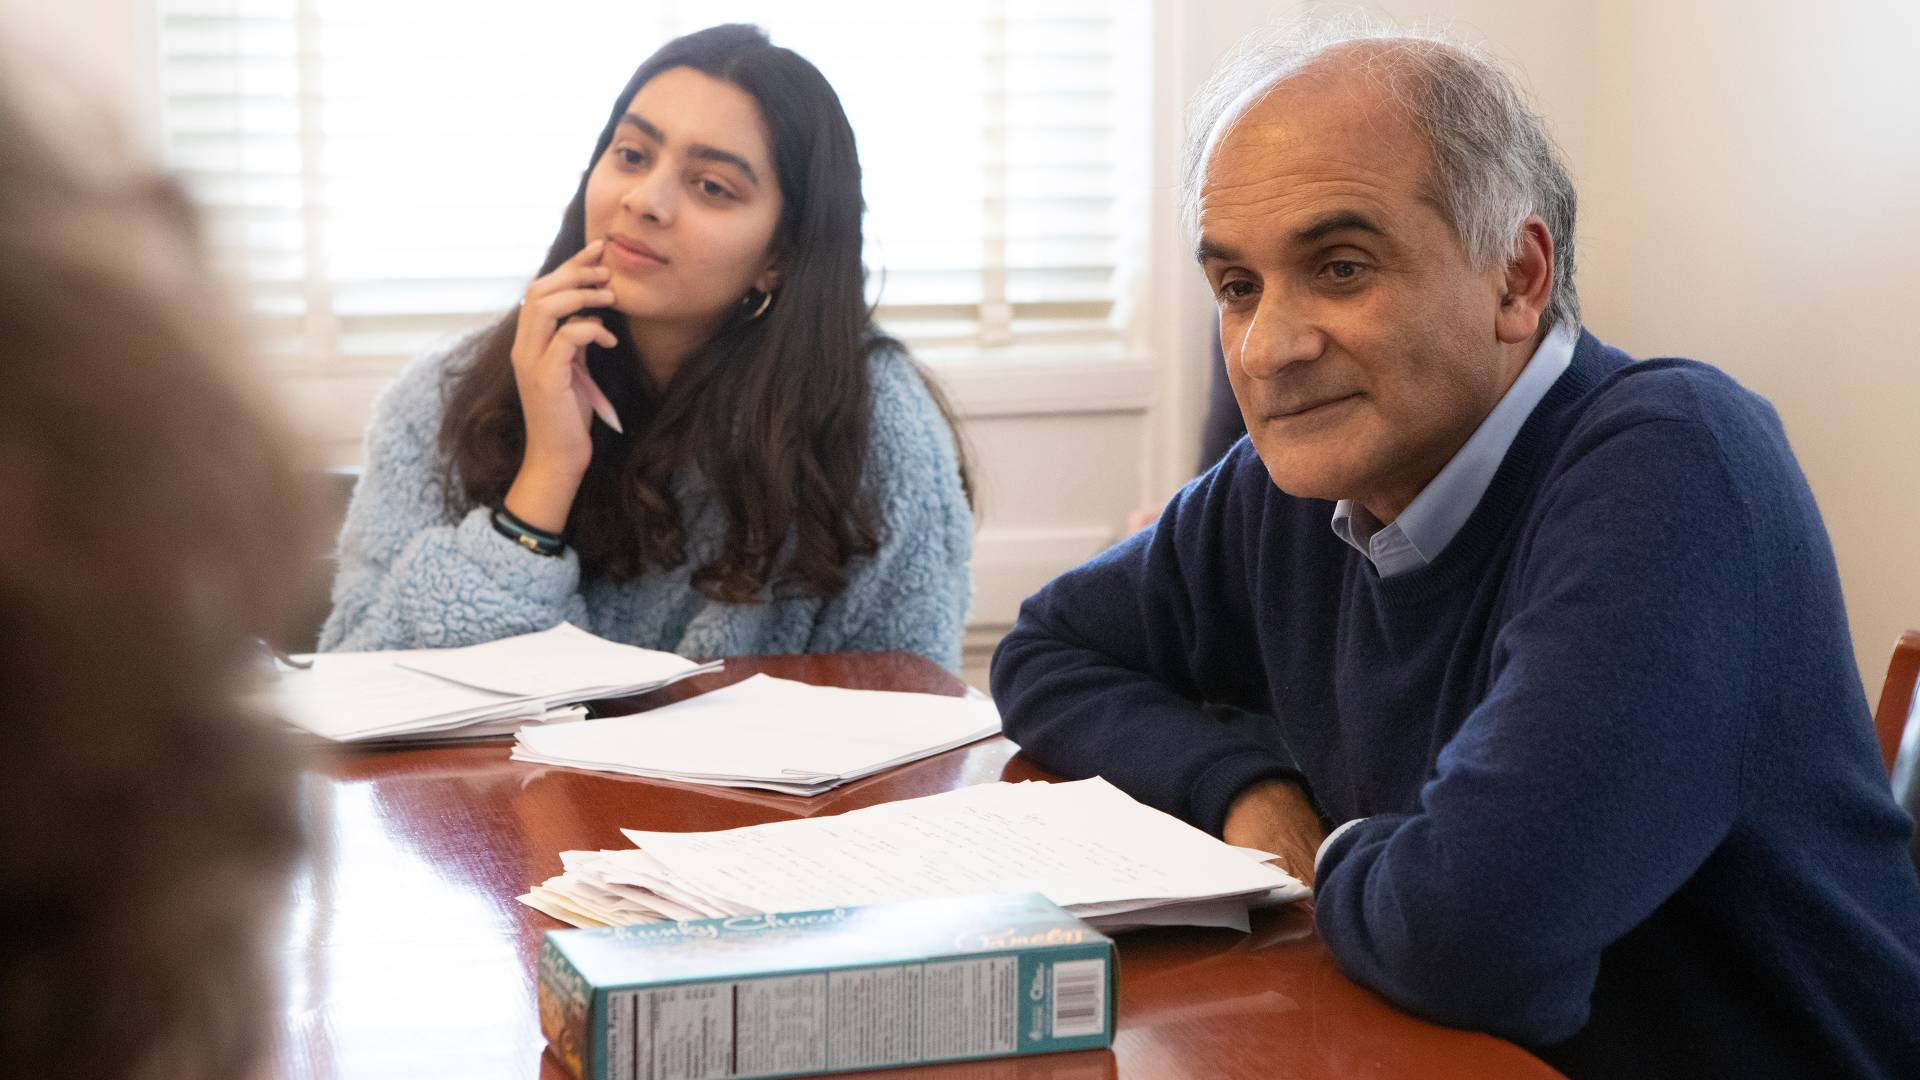 Avanti Divan and Pico Iyer listening to students during class